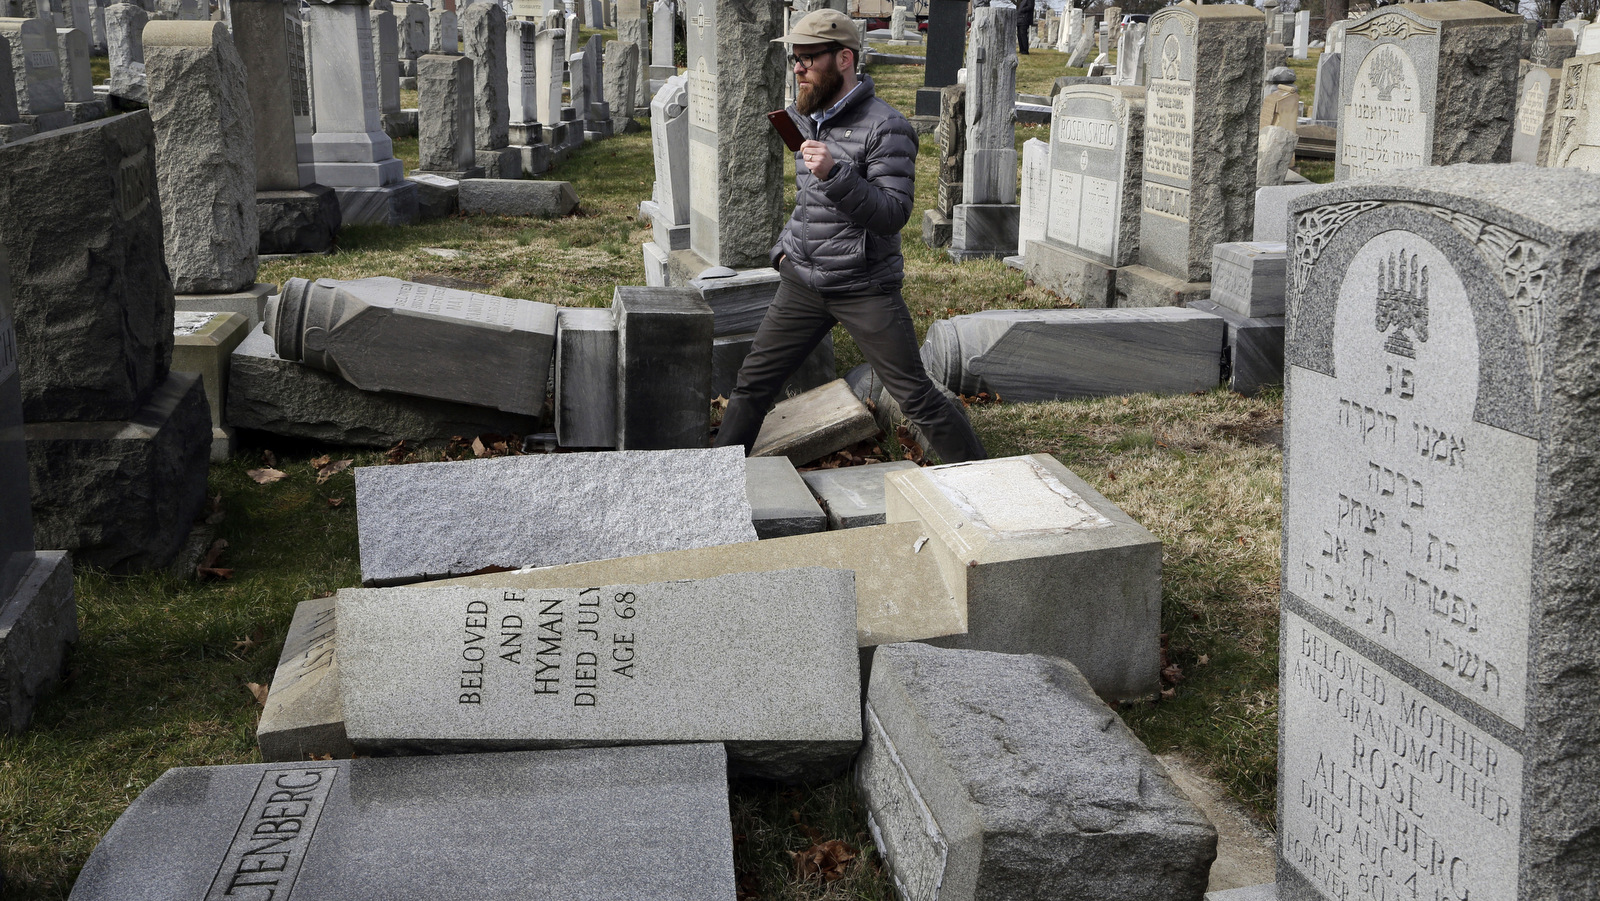 Rabbi Joshua Bolton of the University of Pennsylvania's Hillel center surveys damaged headstones at Mount Carmel Cemetery on Monday, Feb. 27, 2017, in Philadelphia. More than 100 headstones have been vandalized at the Jewish cemetery in Philadelphia, damage discovered less than a week after similar vandalism in Missouri, authorities said. (AP/Jacqueline Larma)